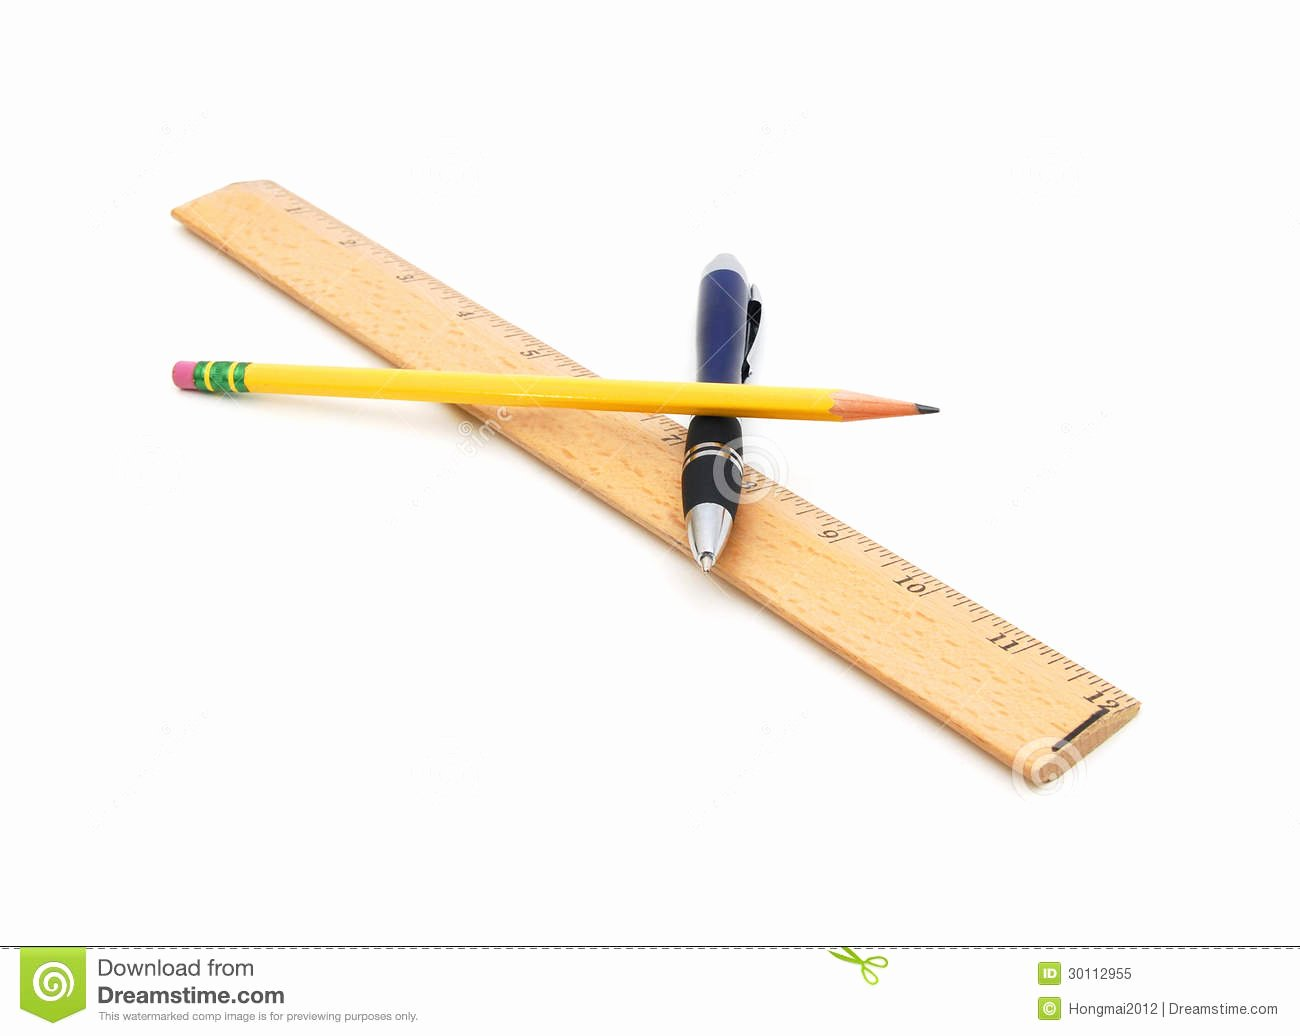 A Picture Of A Pencil Awesome Pen Pencil and Ruler Royalty Free Stock Image